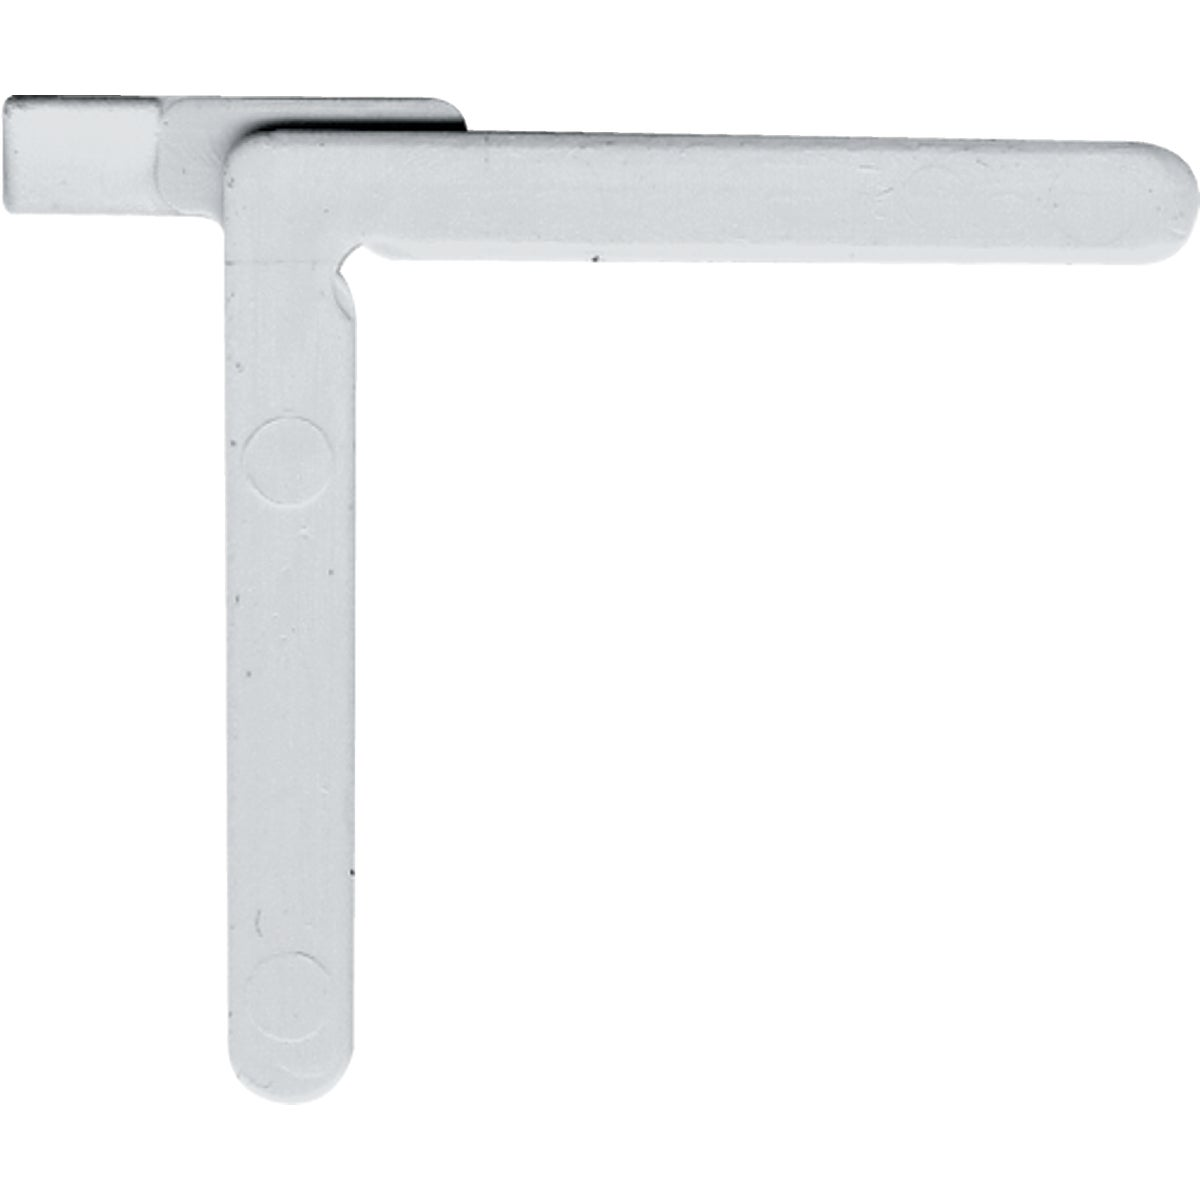 3/16X3/16 NYLON TILT KEY - PL15136 by Prime Line Products